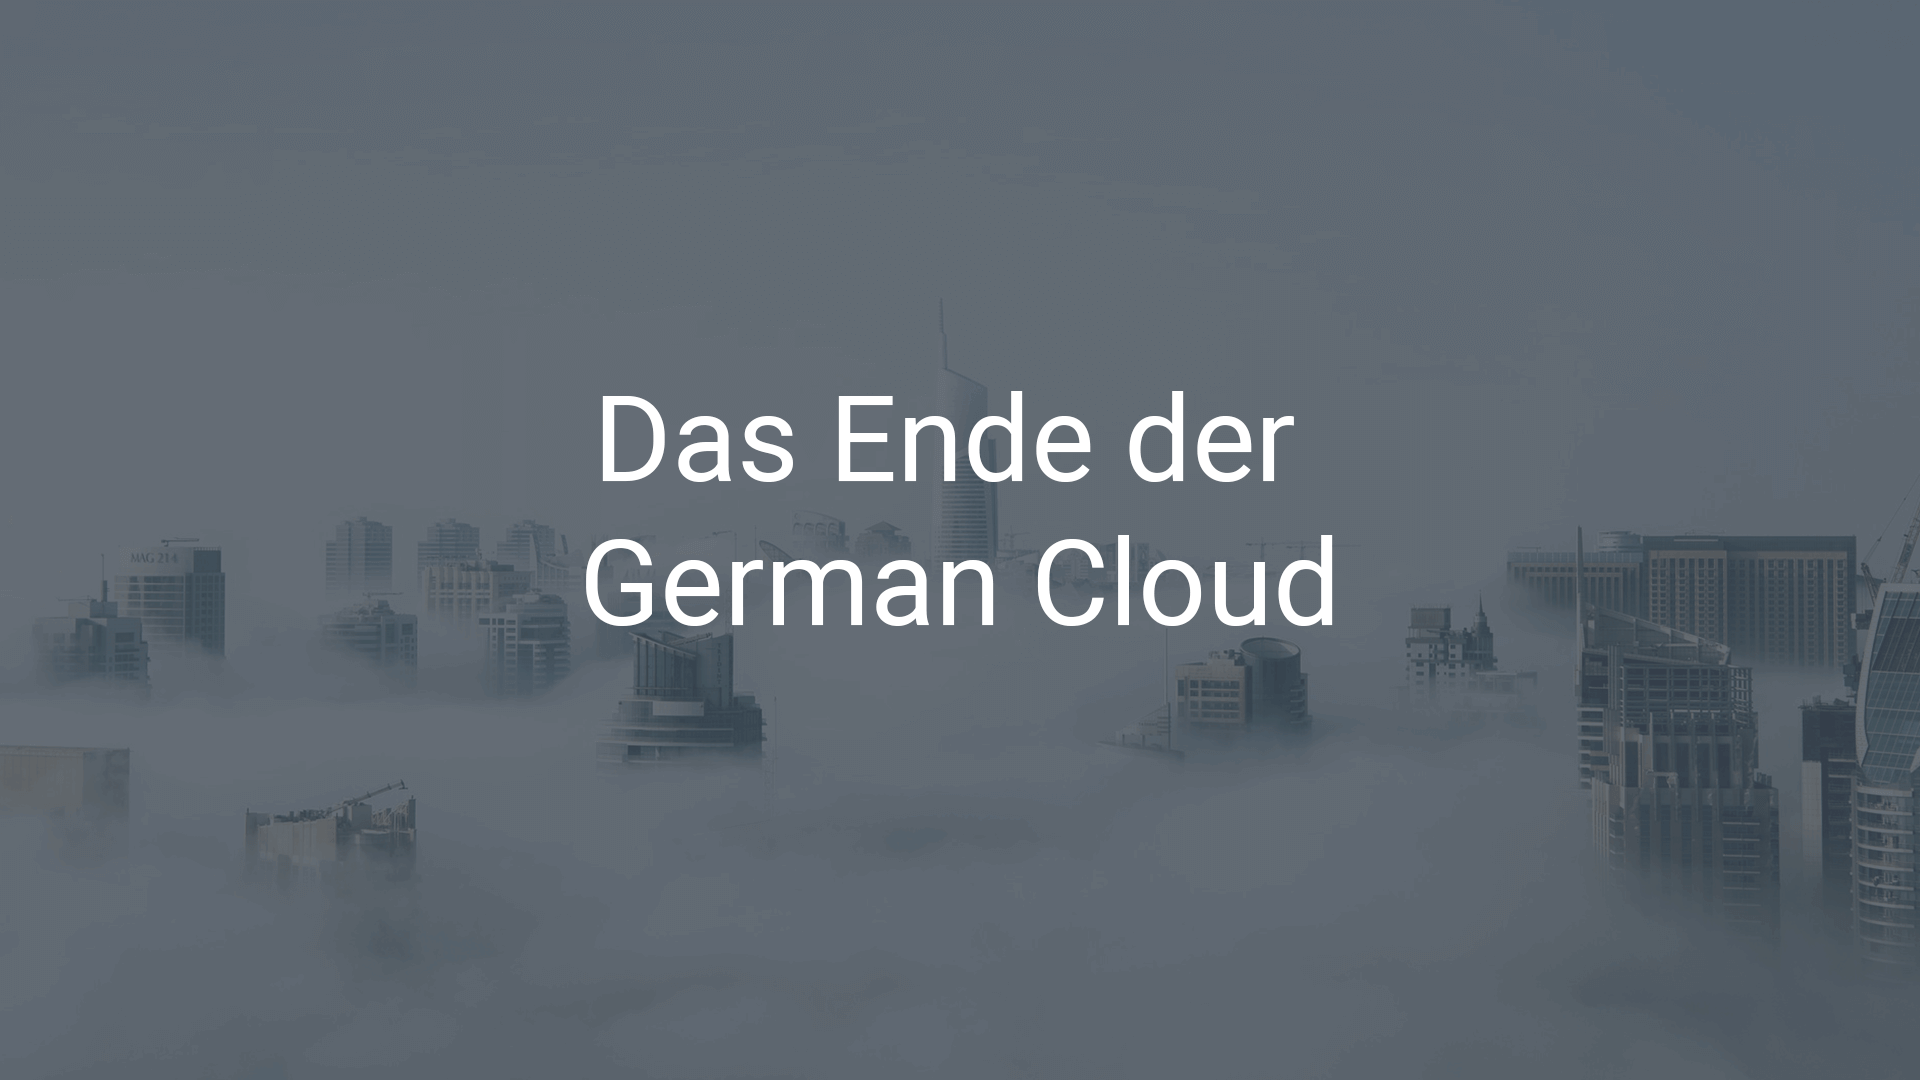 Das Ende der German Cloud